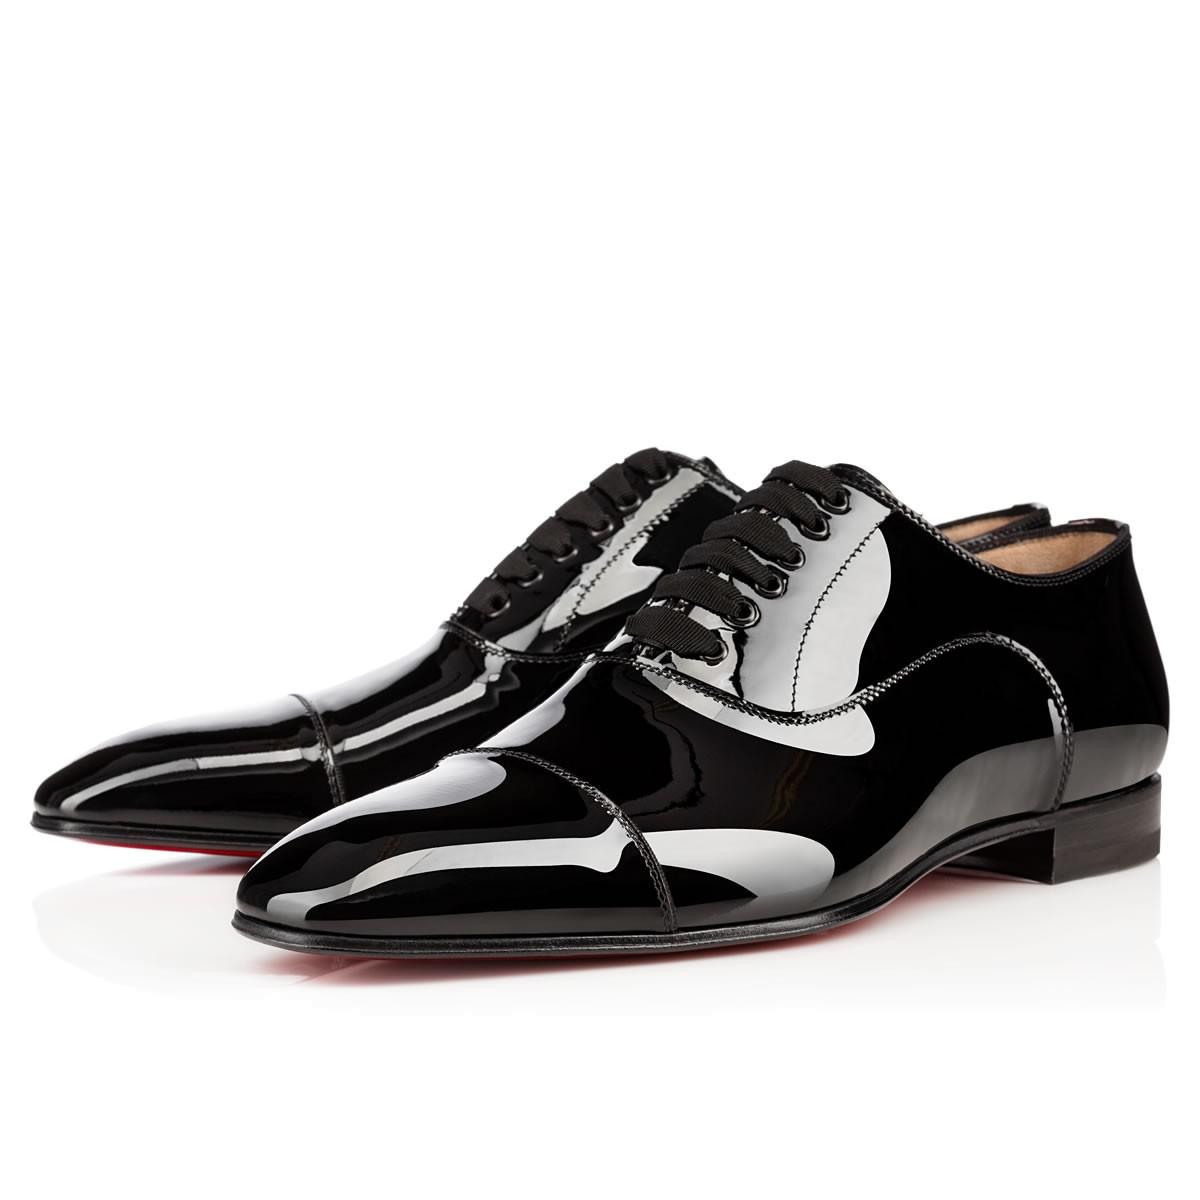 9d36cef4d66 Lyst - Christian Louboutin greggo Flat in Black for Men